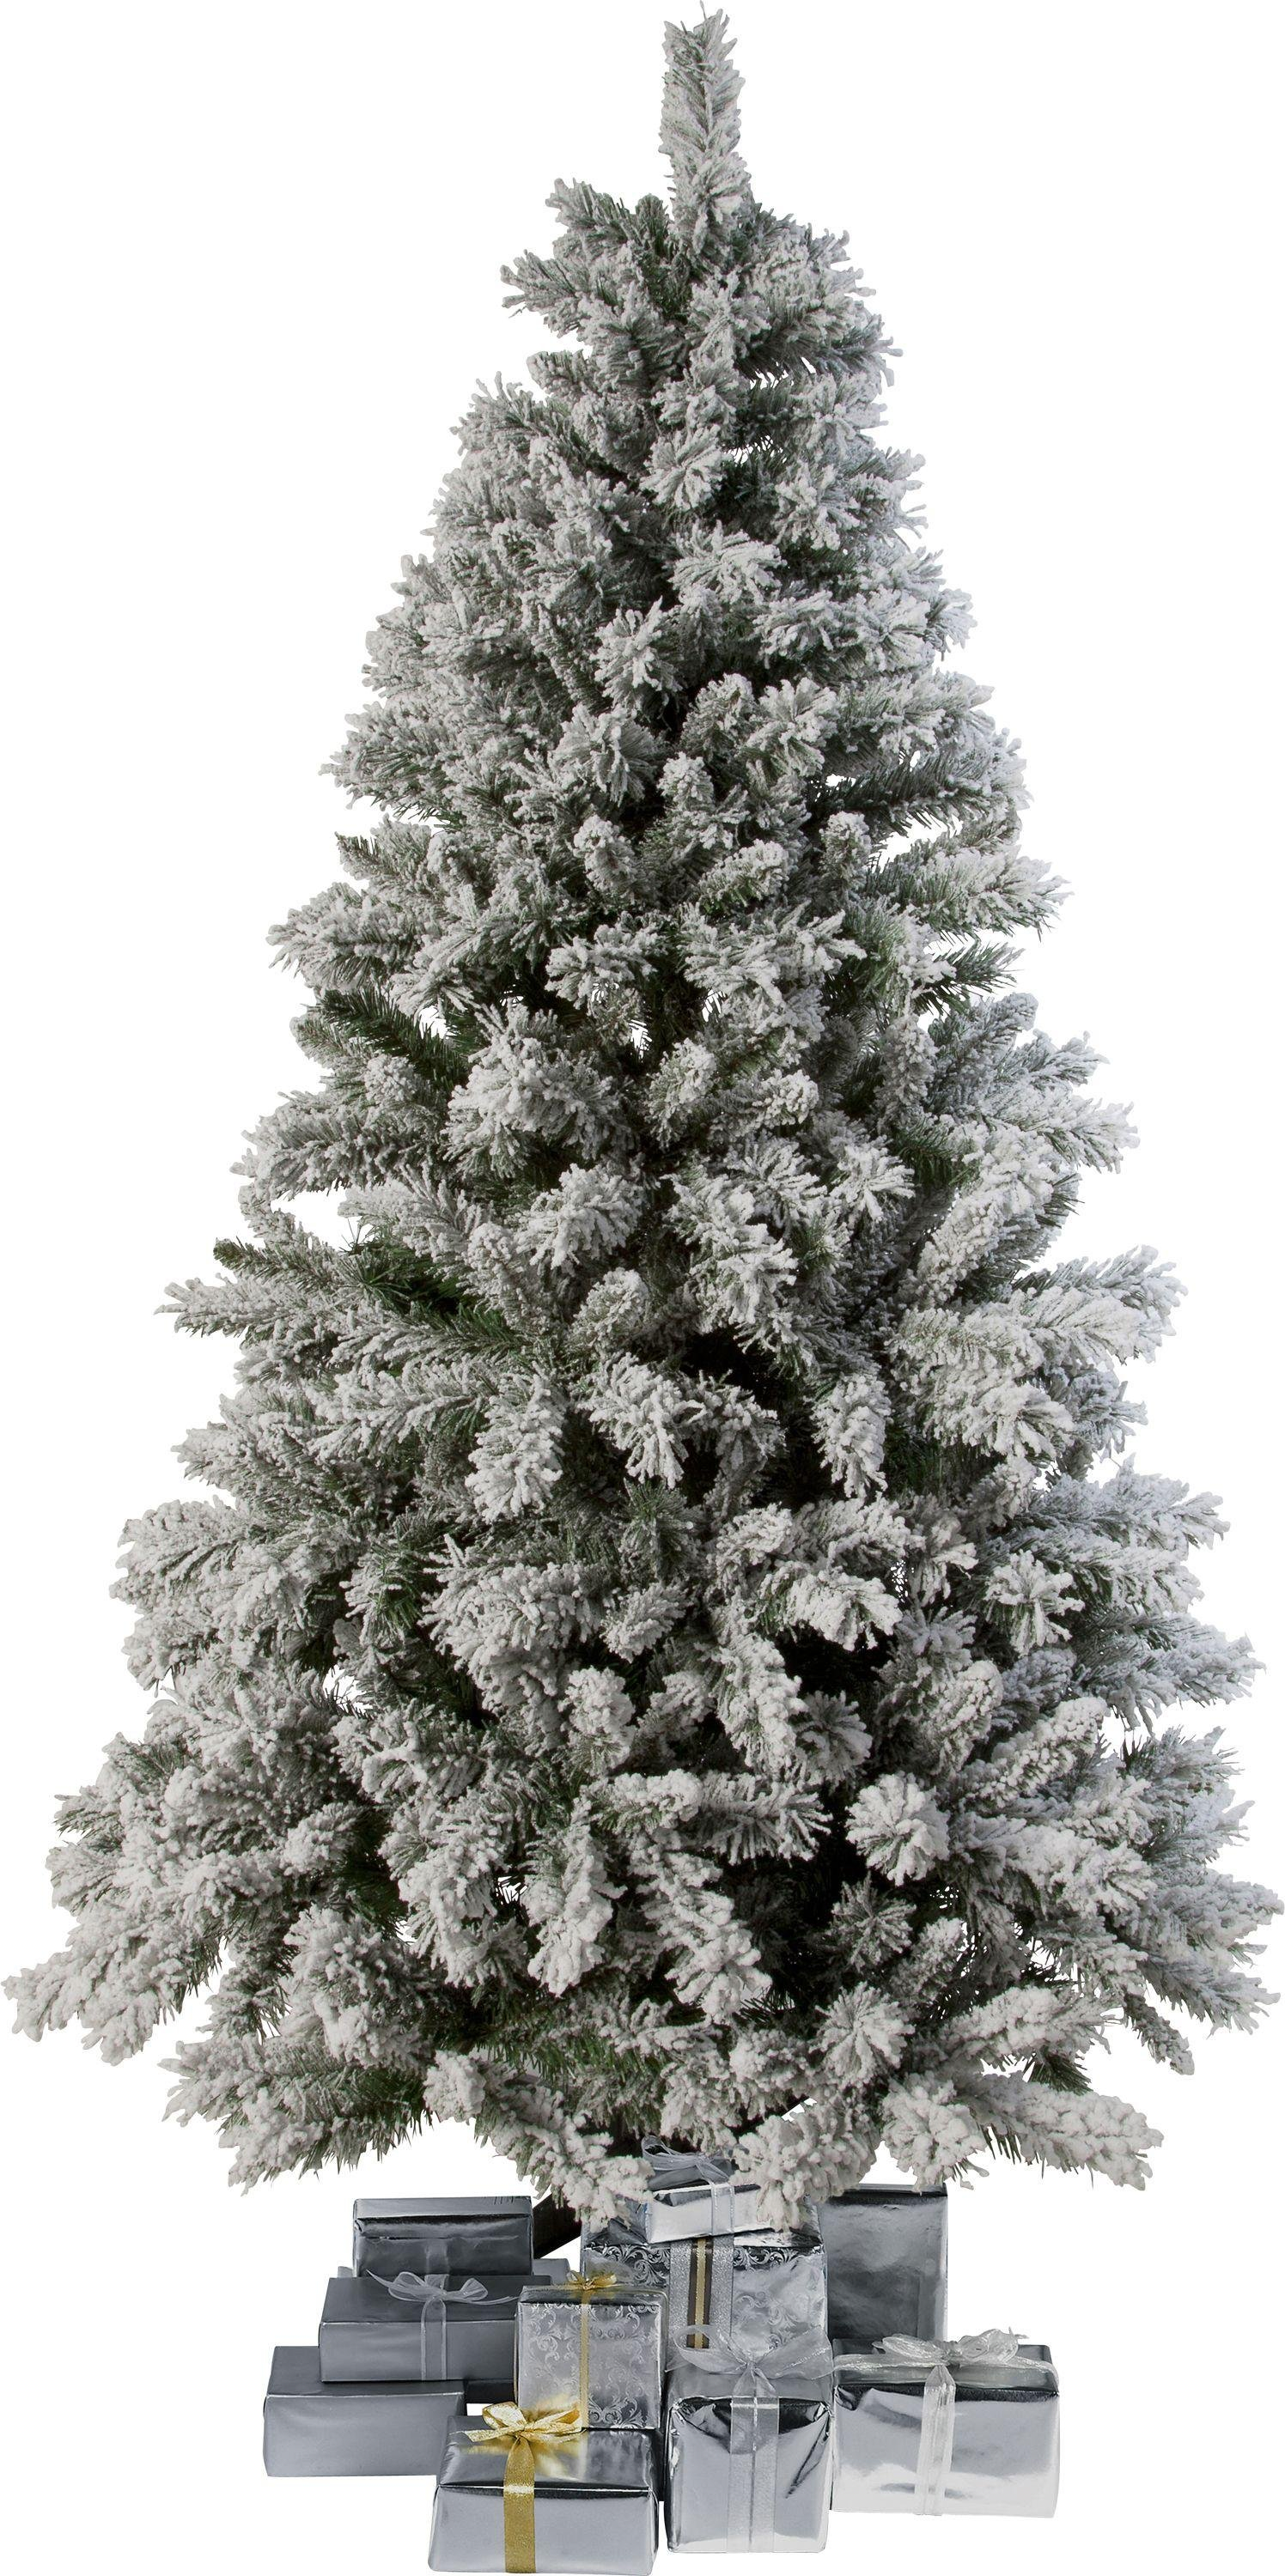 The First Artificial Christmas Tree